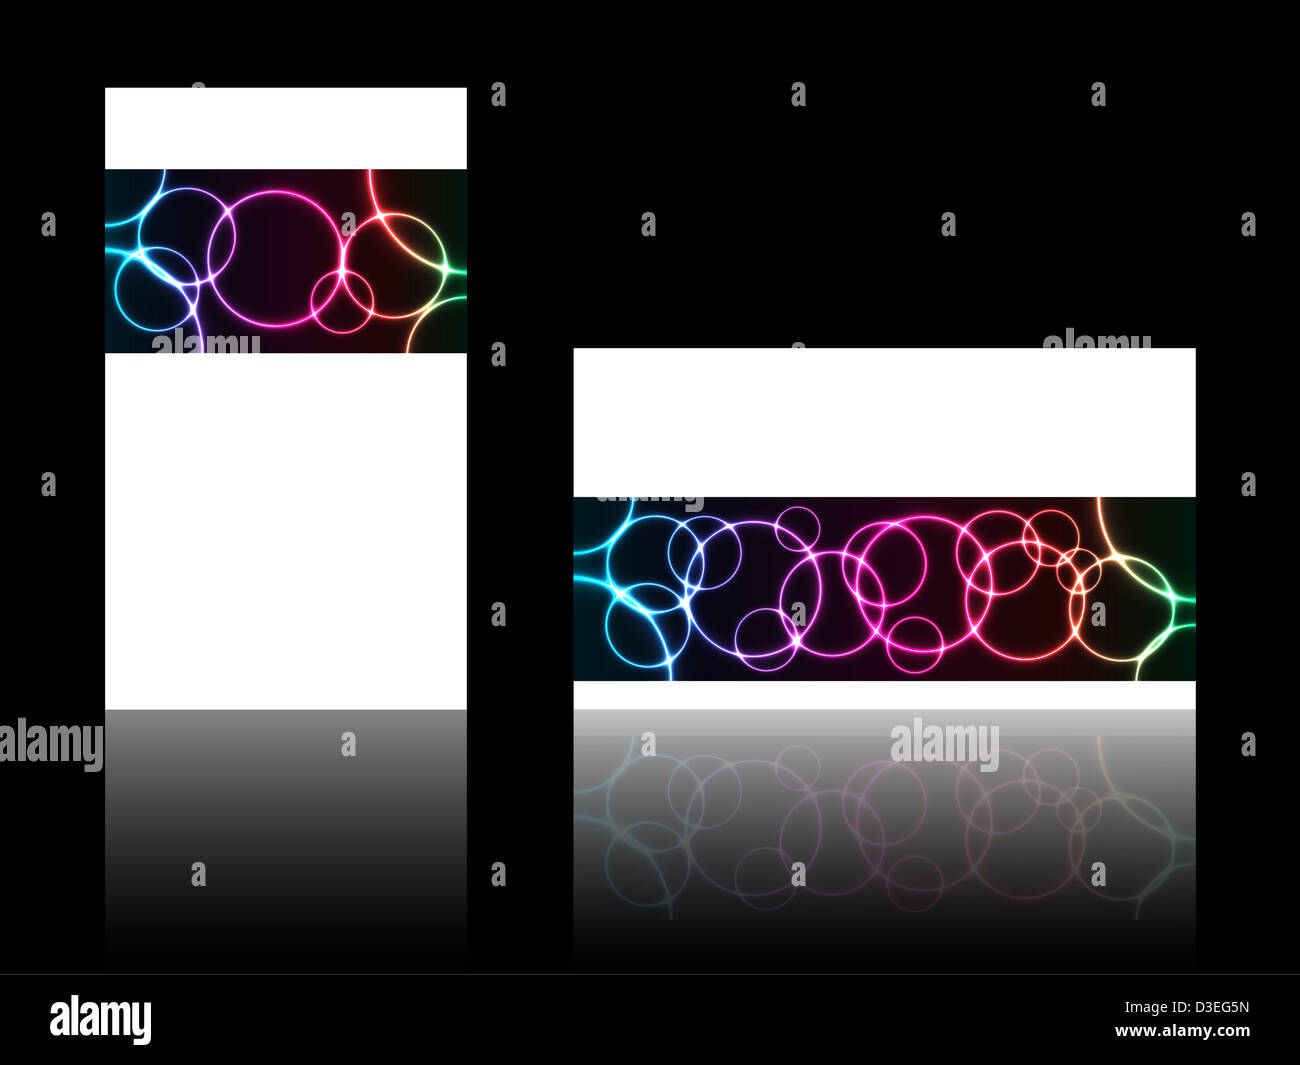 Abstract business card with special plasma design stock for Plasma design business cards